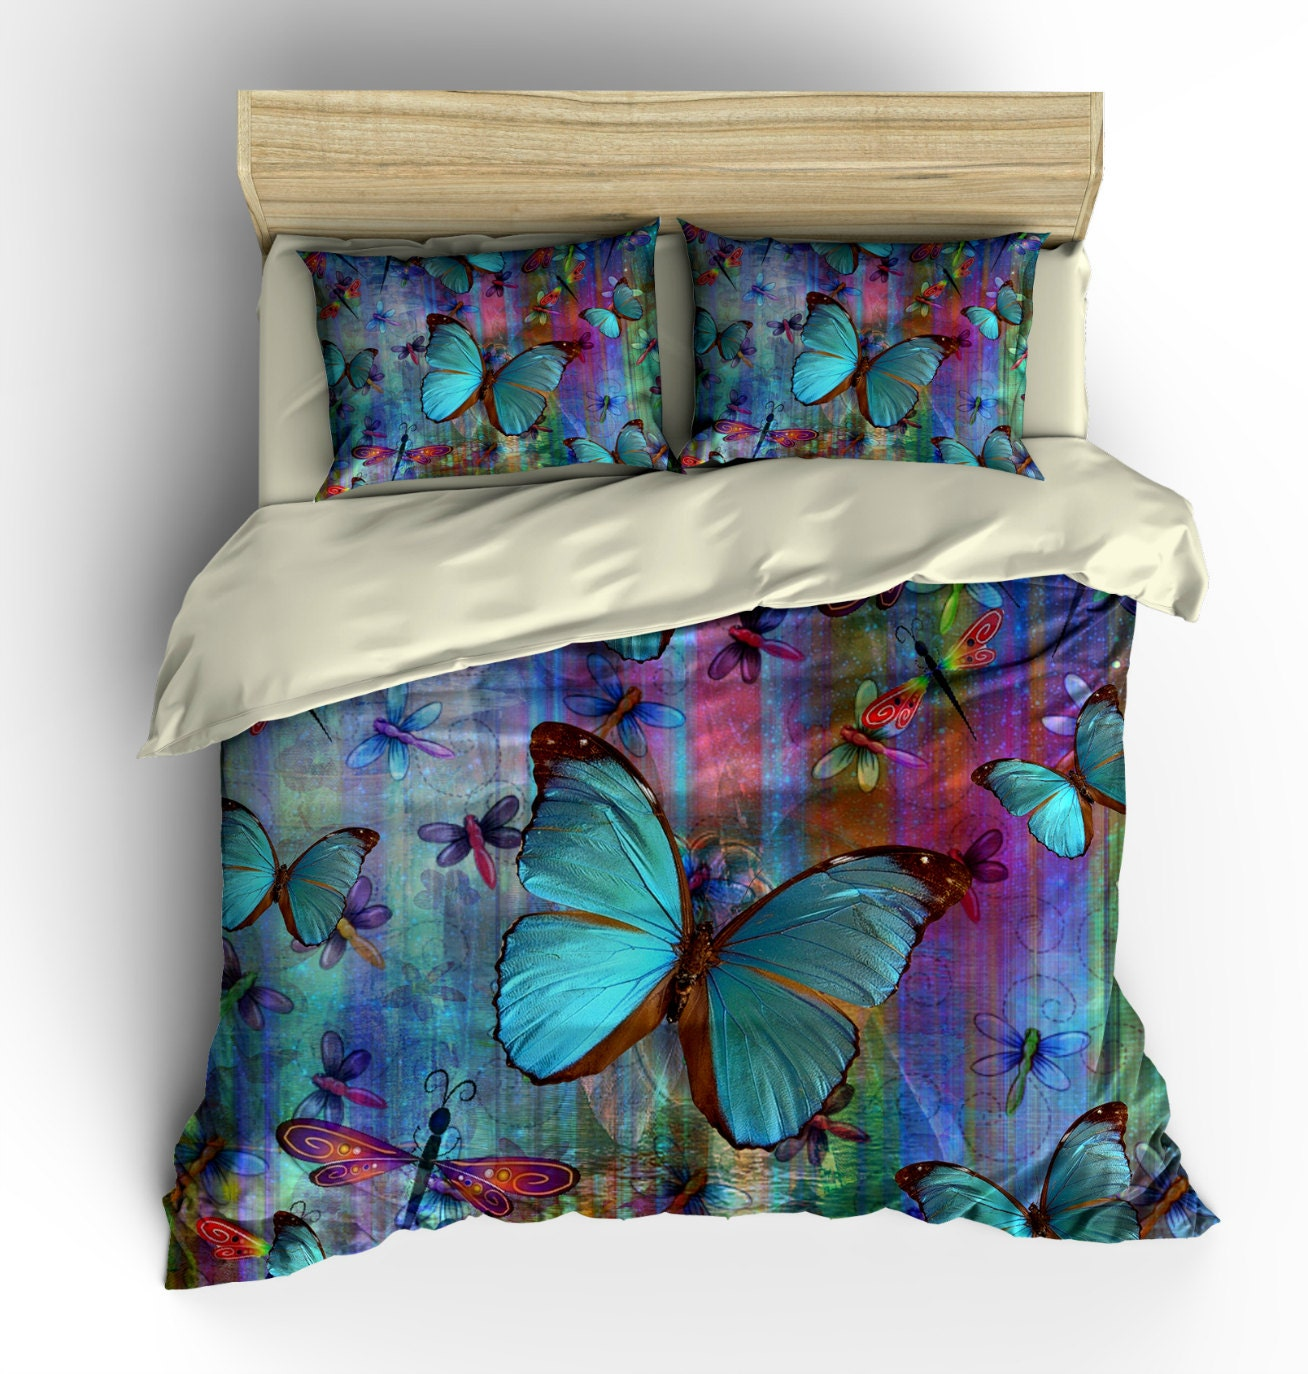 Boho Chic Dragonfly Butterfly Bedding Duvet Cover Set Pillow